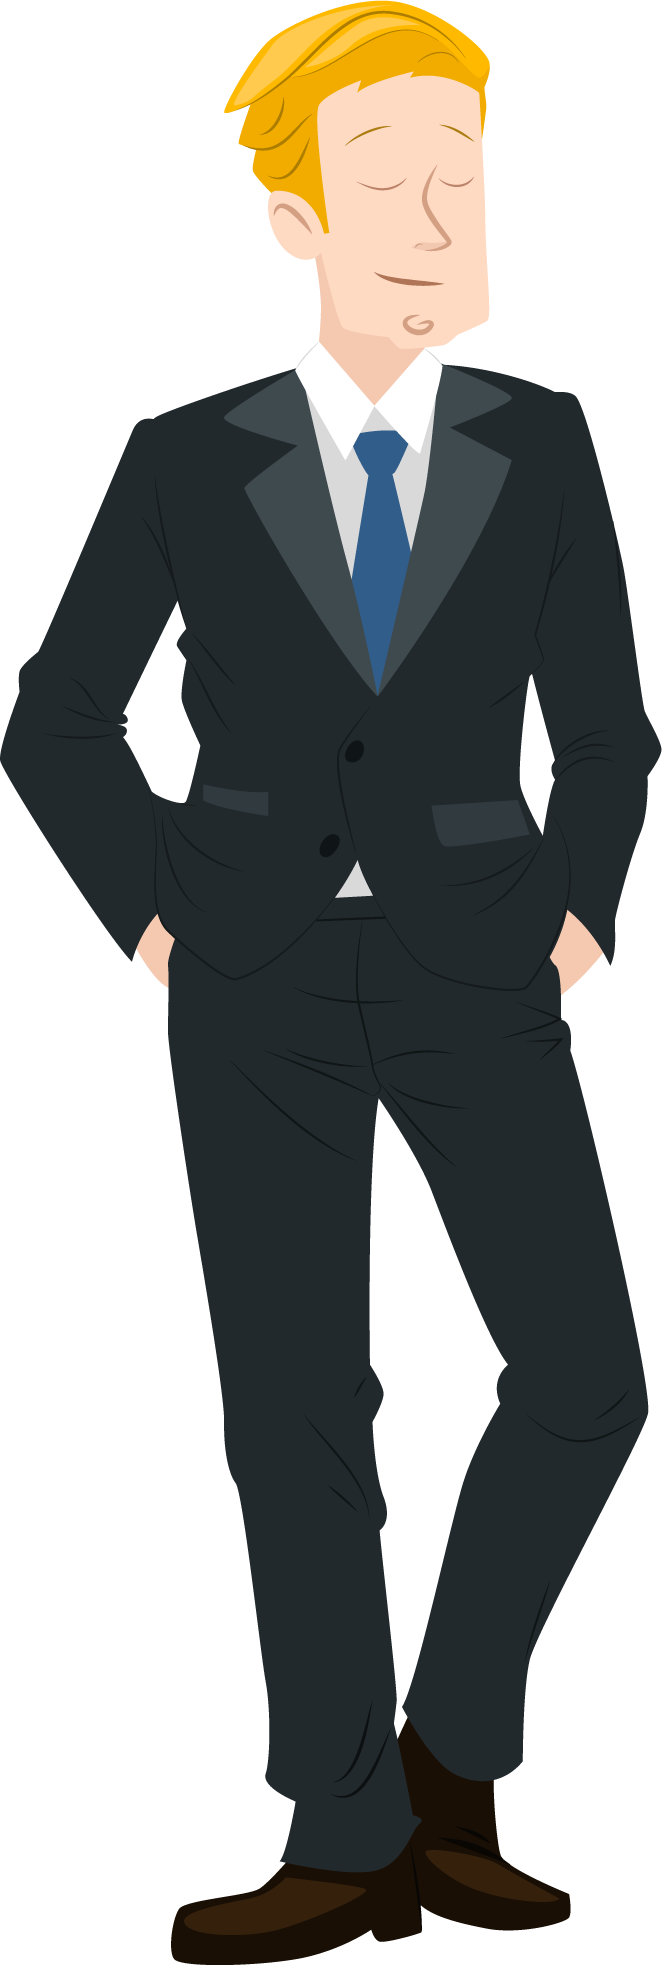 Men in suits clipart clipart images gallery for free.